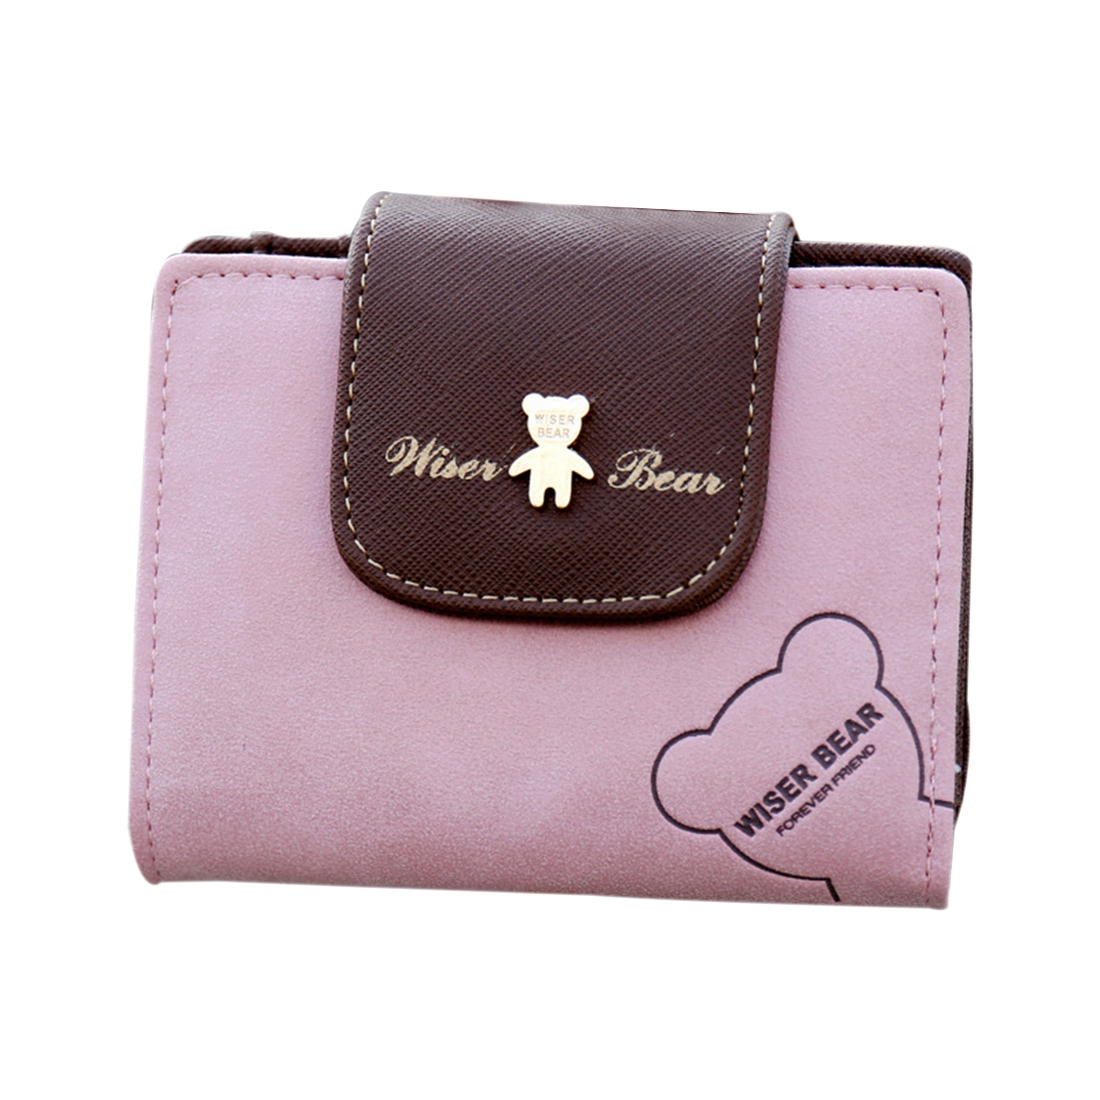 VSEN Fashion Lovely Bear Wallet Female Leather Small Change Clasp Purse Money Card Coin Holder Girls Women Purses(Pink)